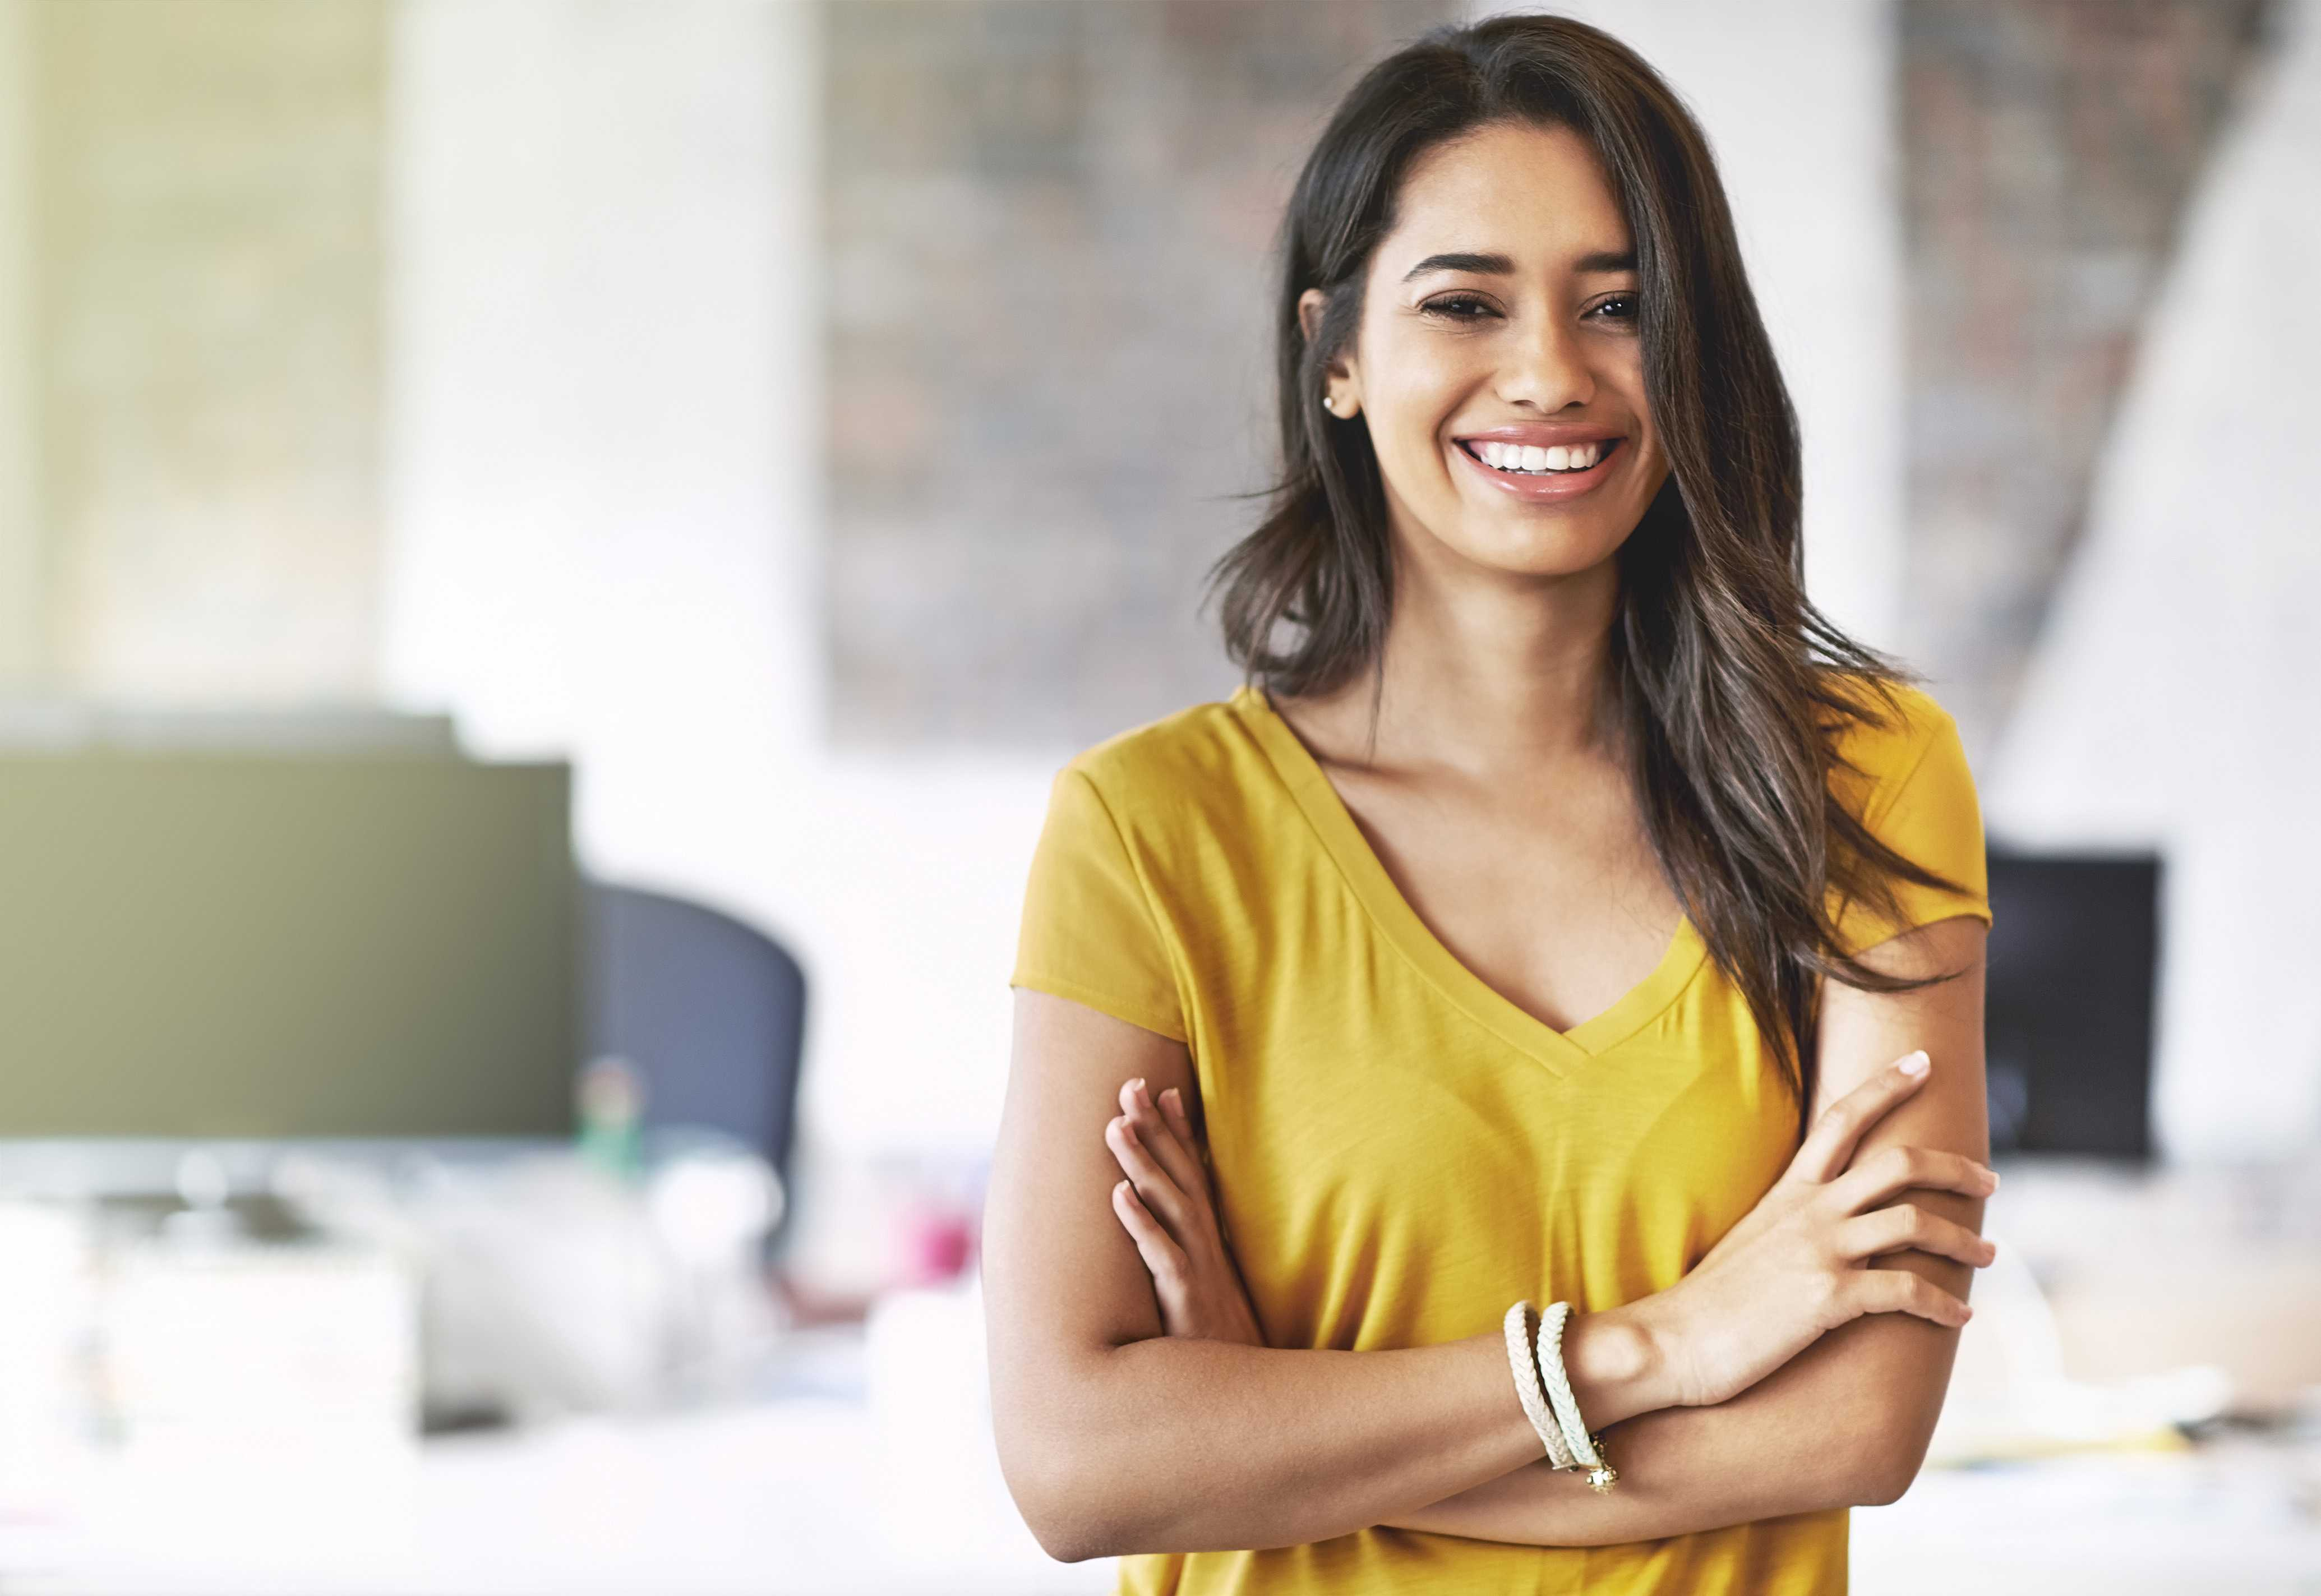 The Key to Finding Happiness at Work